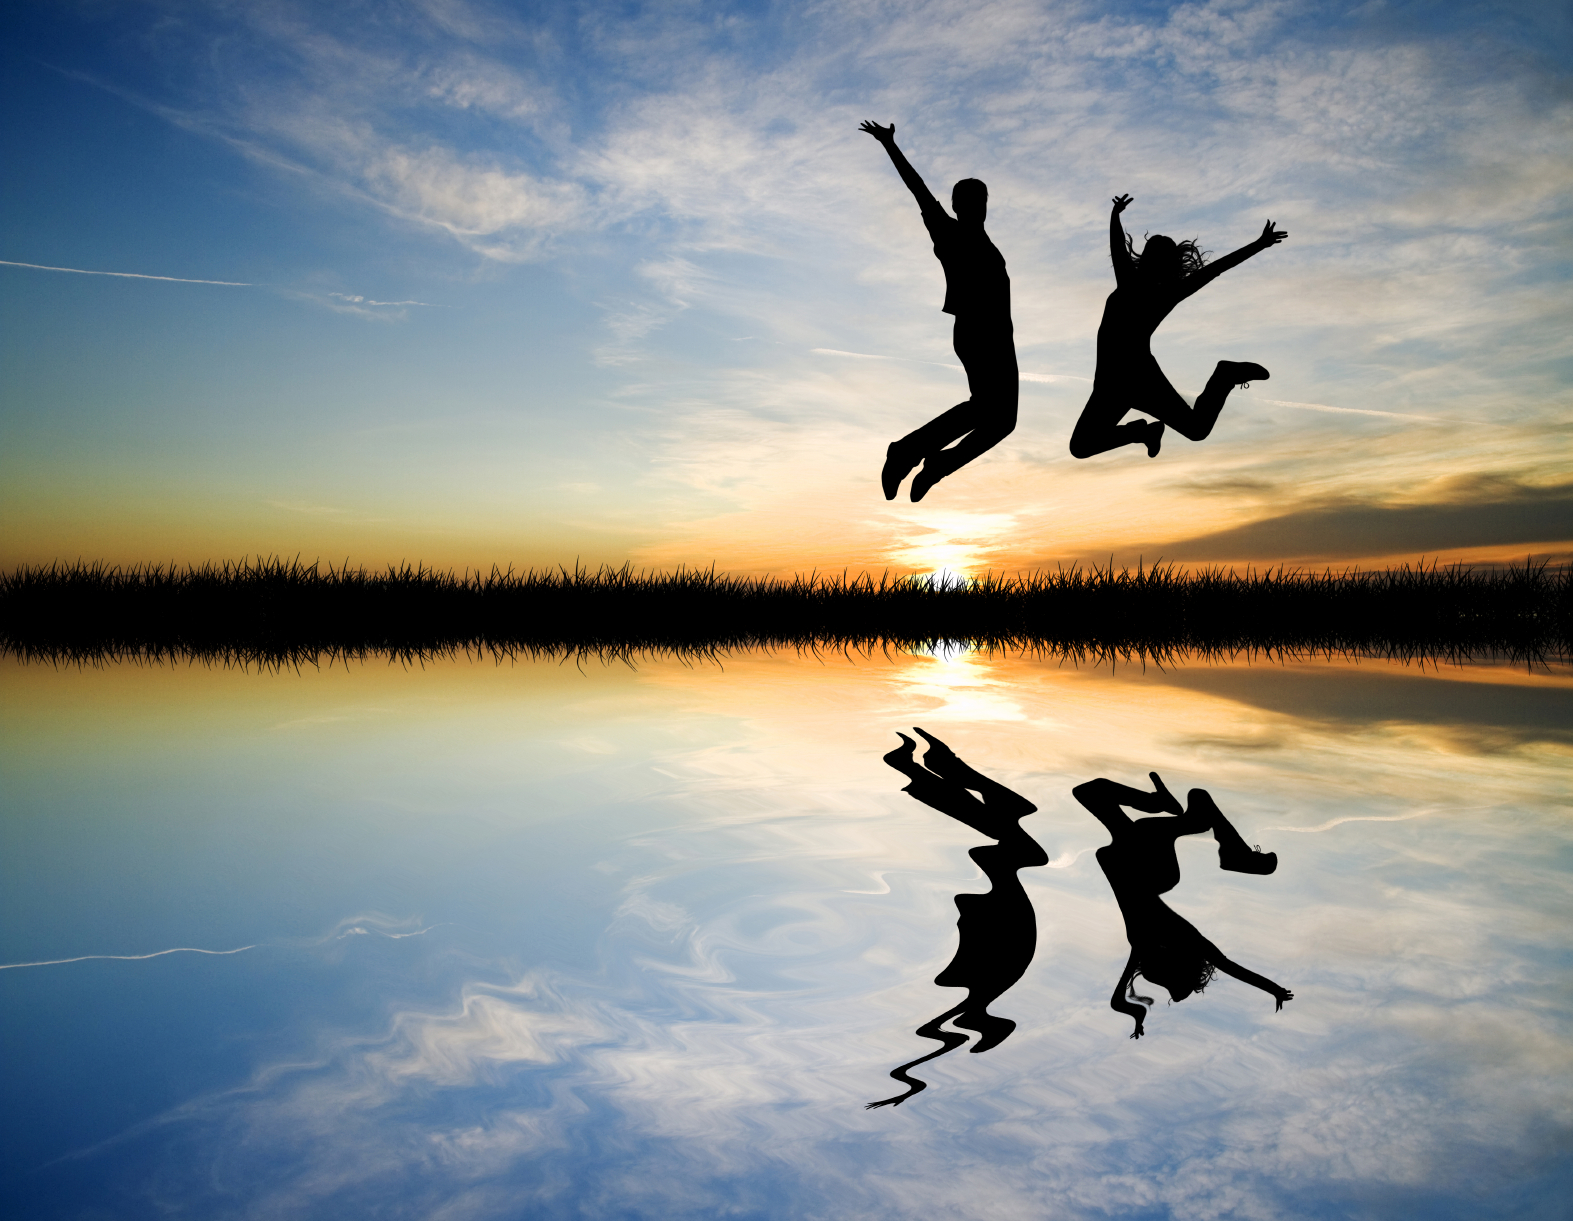 People jumping at sunset. © RossellaApostoli via iStock